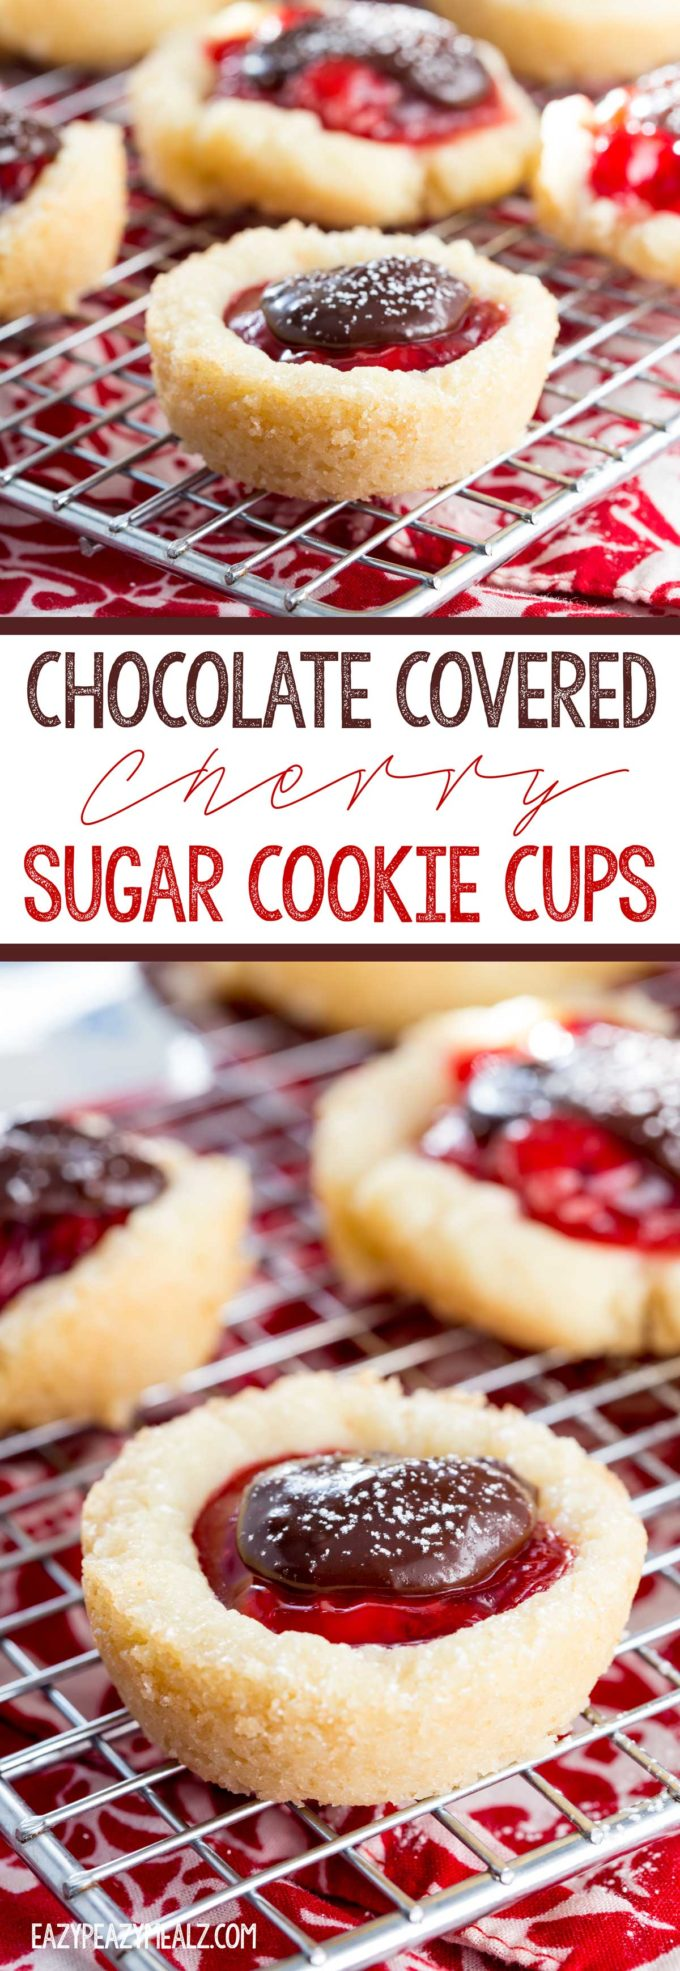 Chocolate Covered Cherry Sugar Cookie Cups are a great way to spread cheer during the hollidays, and are so easy to make.